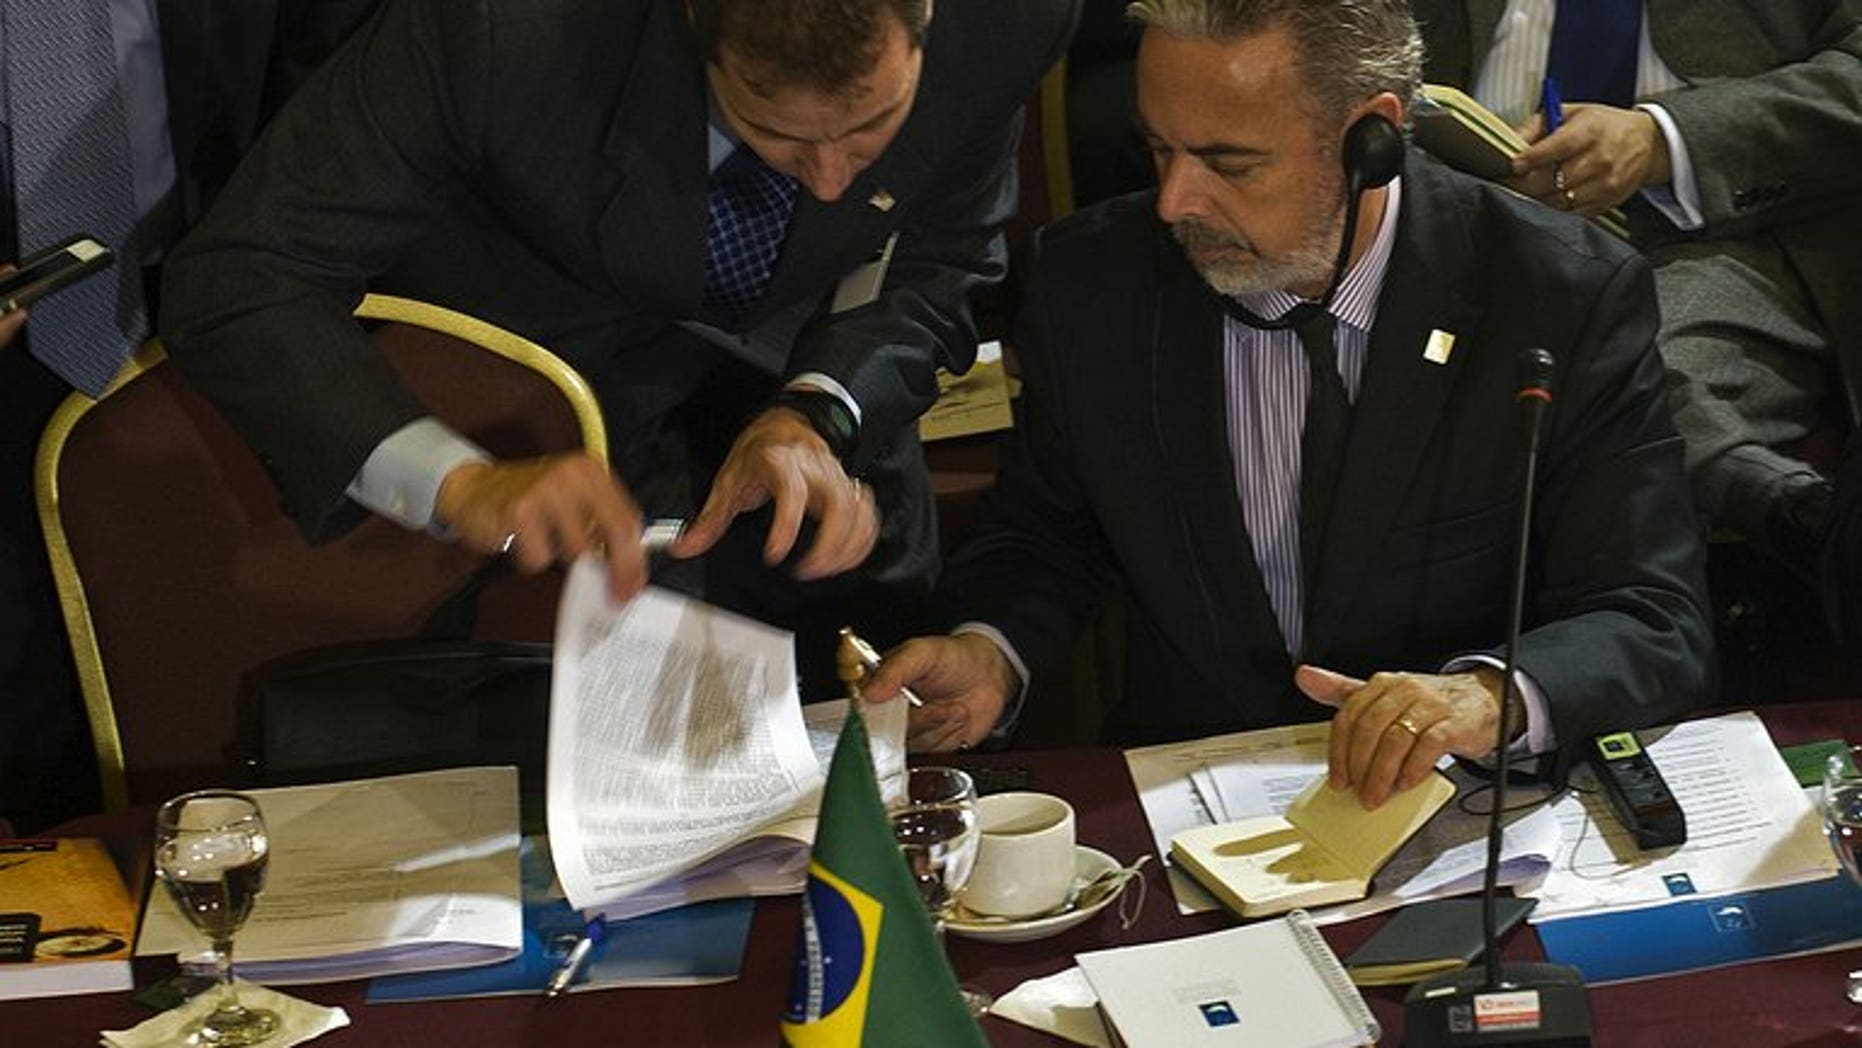 Brazil's Foreign Minister Antonio Patritota listens to an assistant during a Mercosur meeting in Montevideo on July 11, 2013. Leaders of the South American trade bloc that includes Brazil and Venezuela meet Friday for a summit that will focus on allegations of US spying that have outraged US allies and rivals alike.